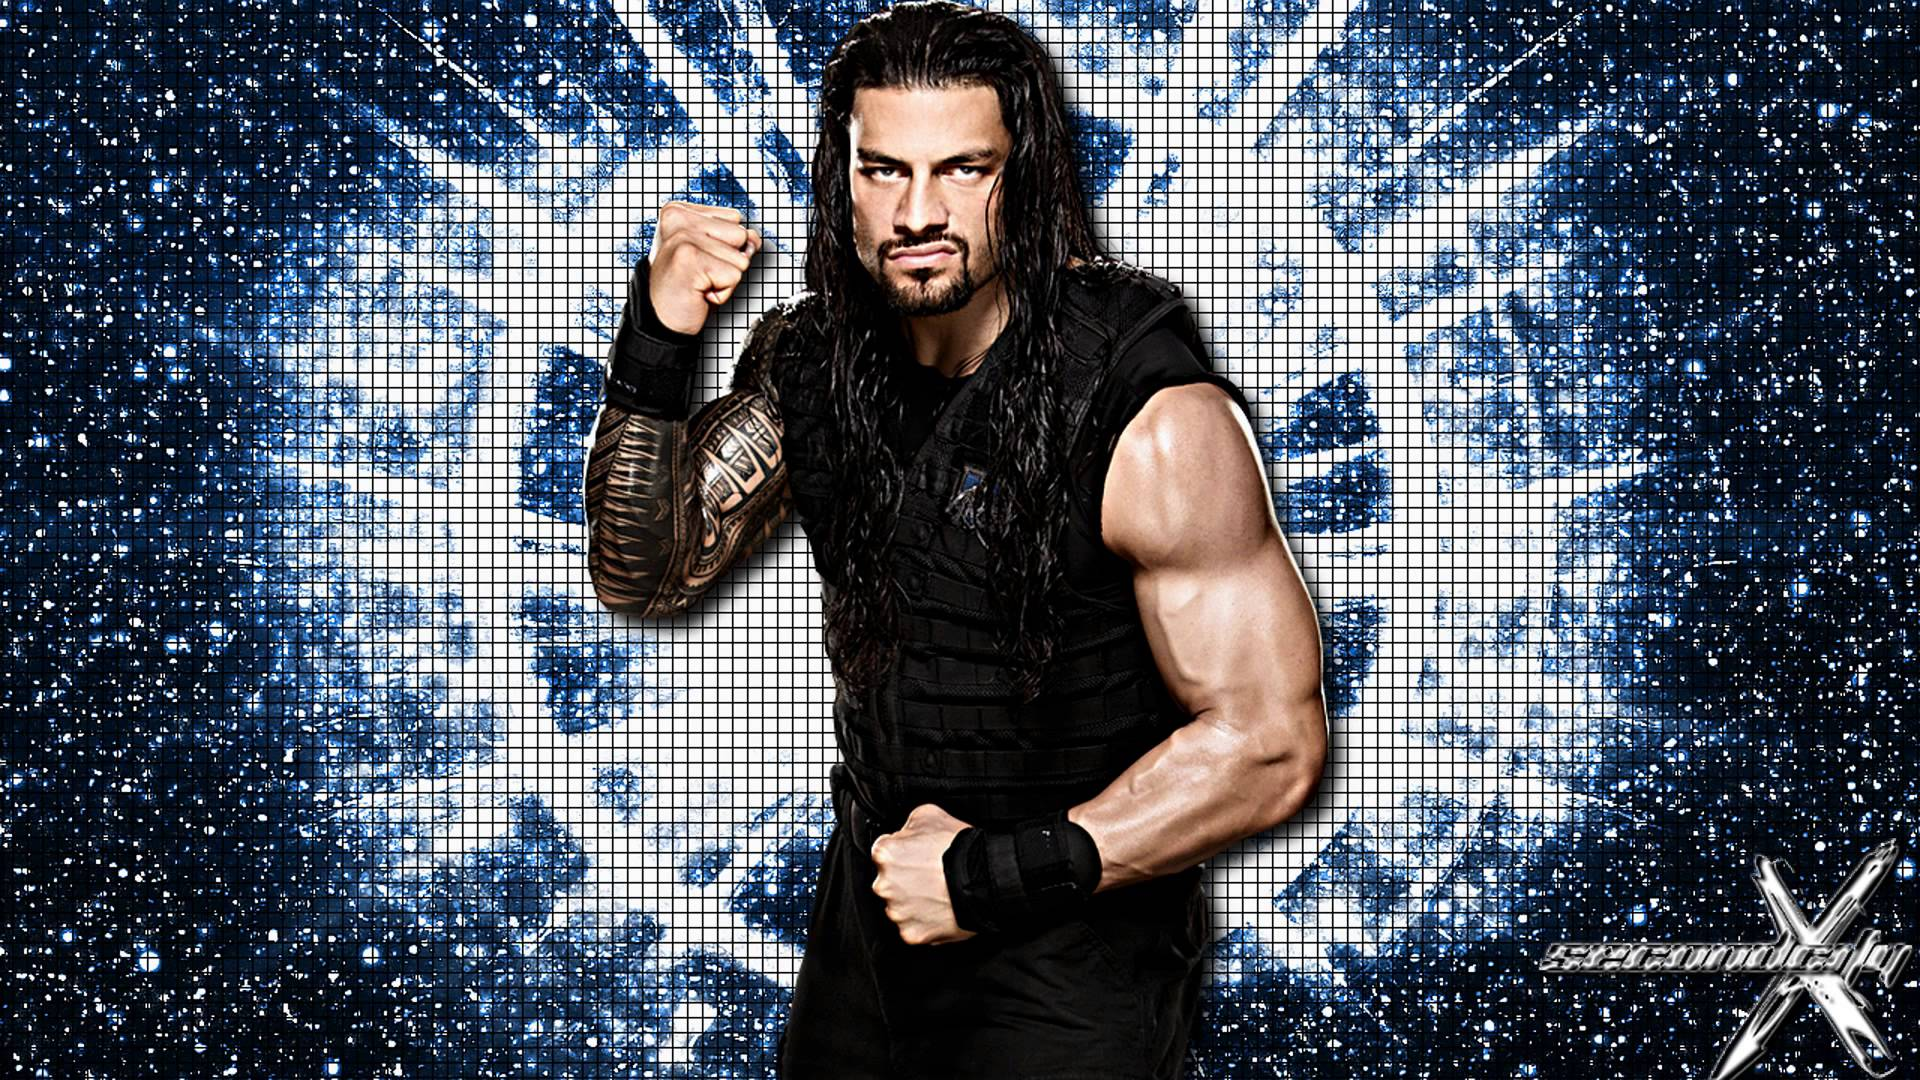 WWE Roman Reigns Wallpapers HD Pictures | Live HD Wallpaper HQ ...